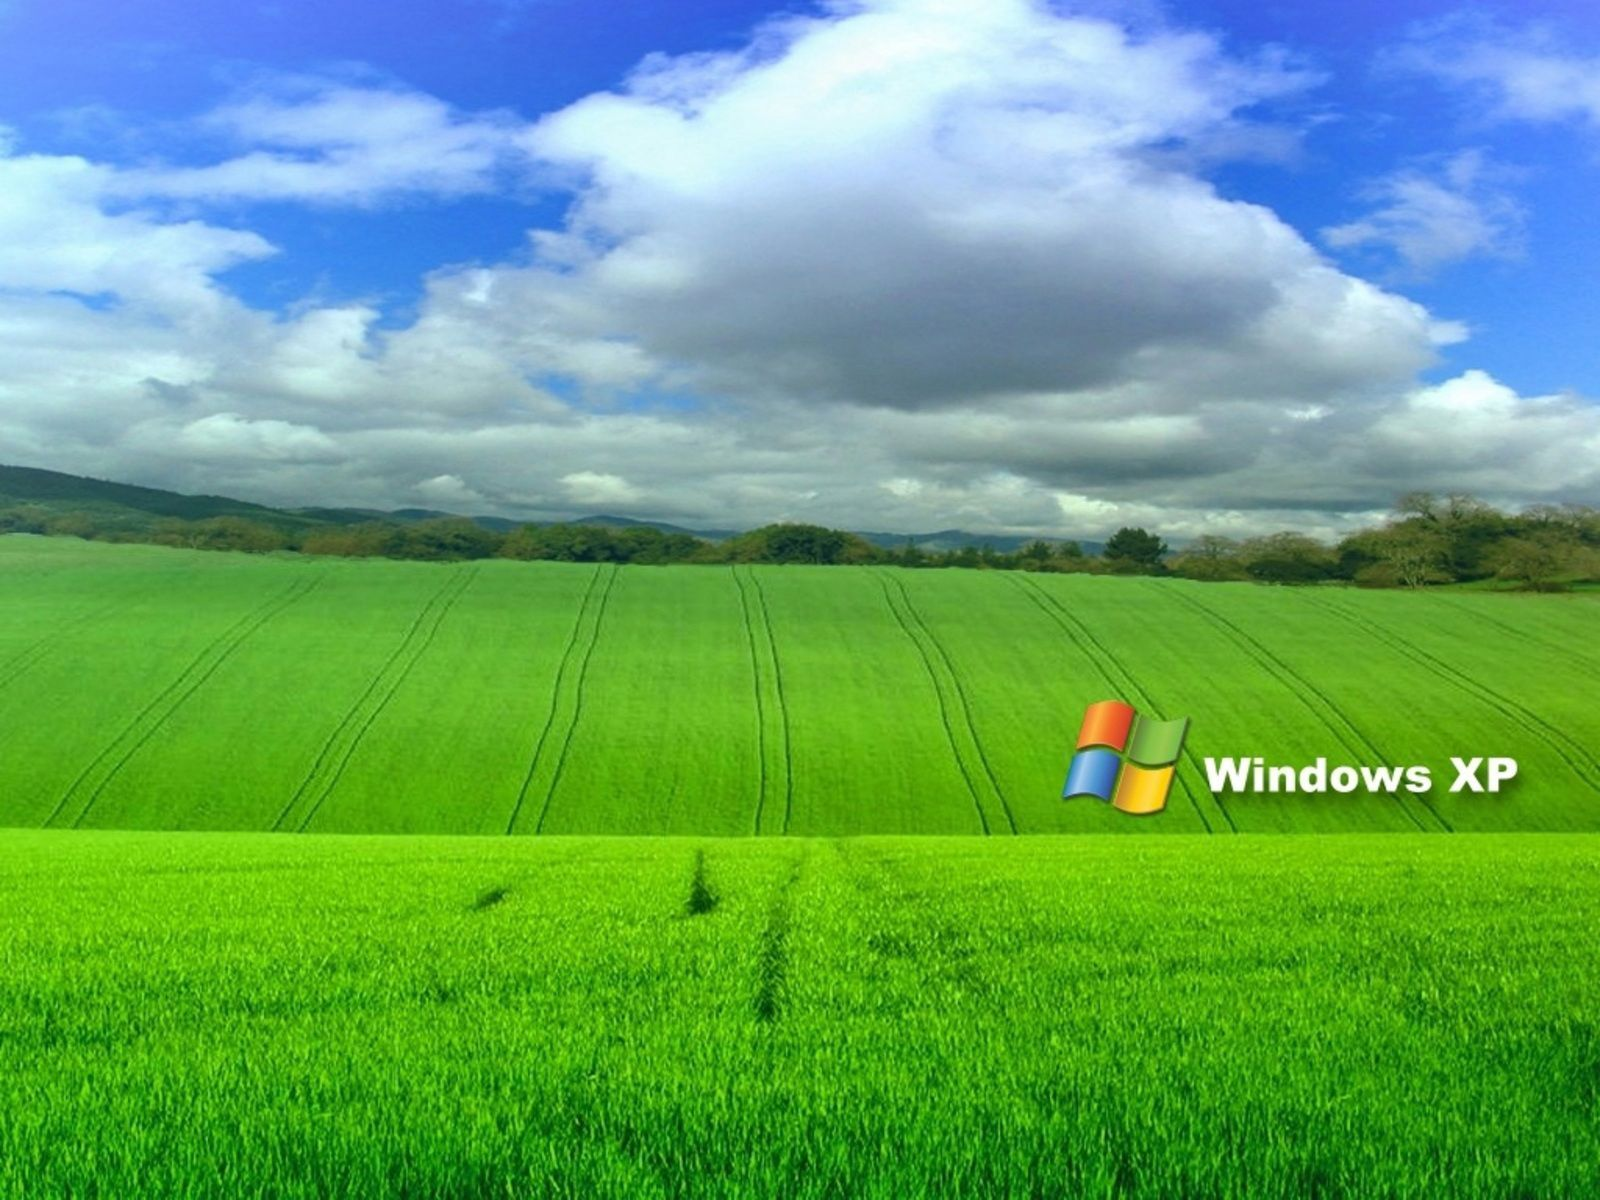 Wallpaper Windows Xp Wallpapers 16001200 Windows Xp Wallpapers Free Download 4k Wallpaper Free Download Ios Wallpapers Funny Wallpapers